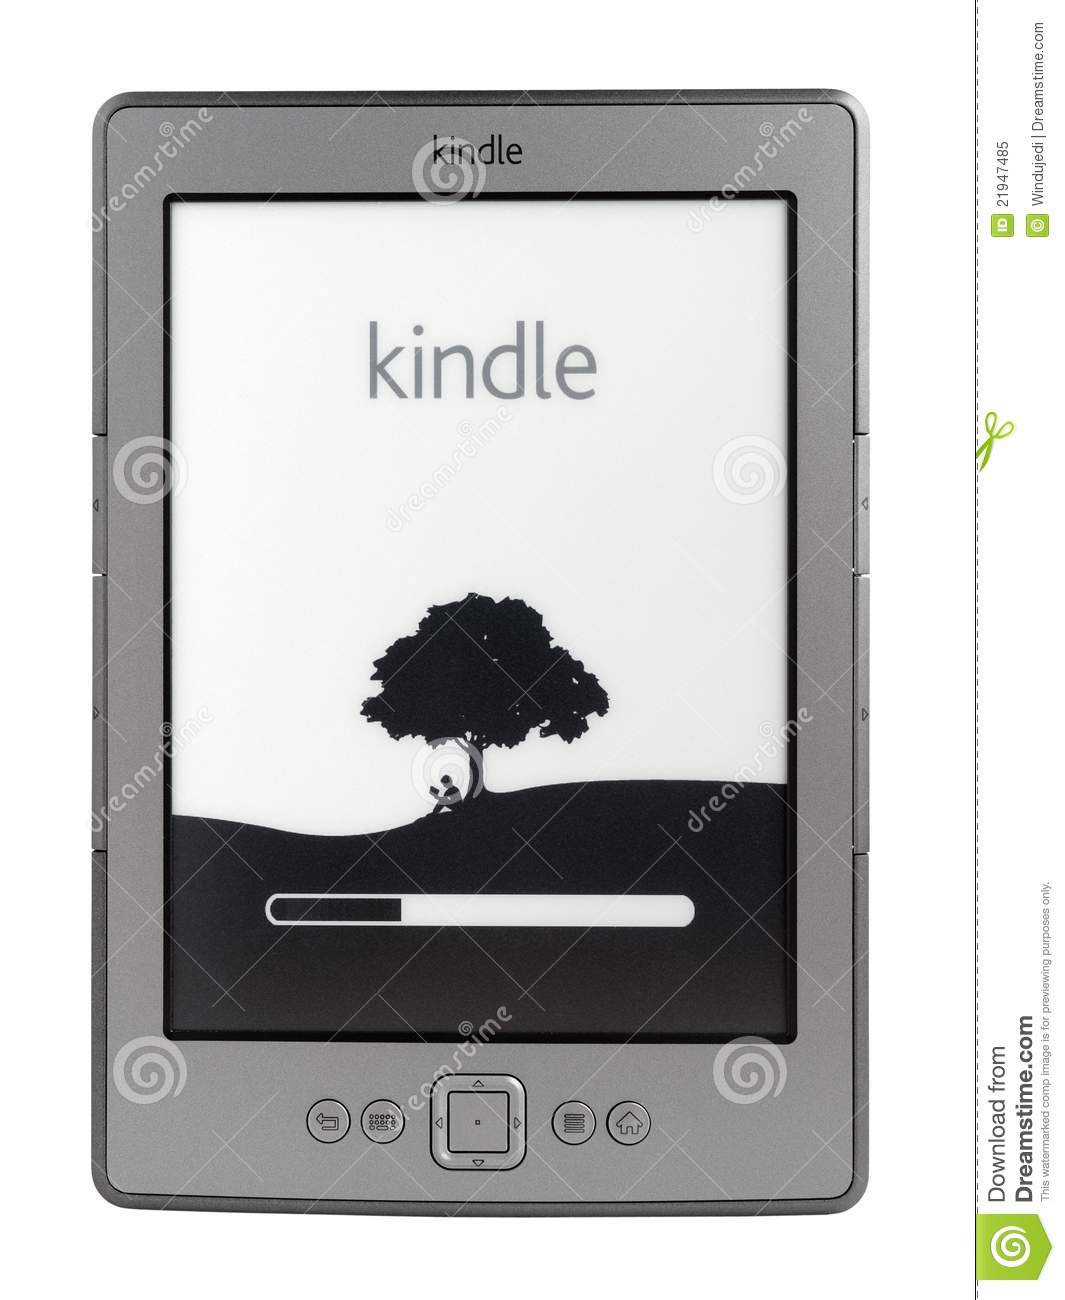 New Amazon Kindle E-Reader 4th Generation Editorial Image ...